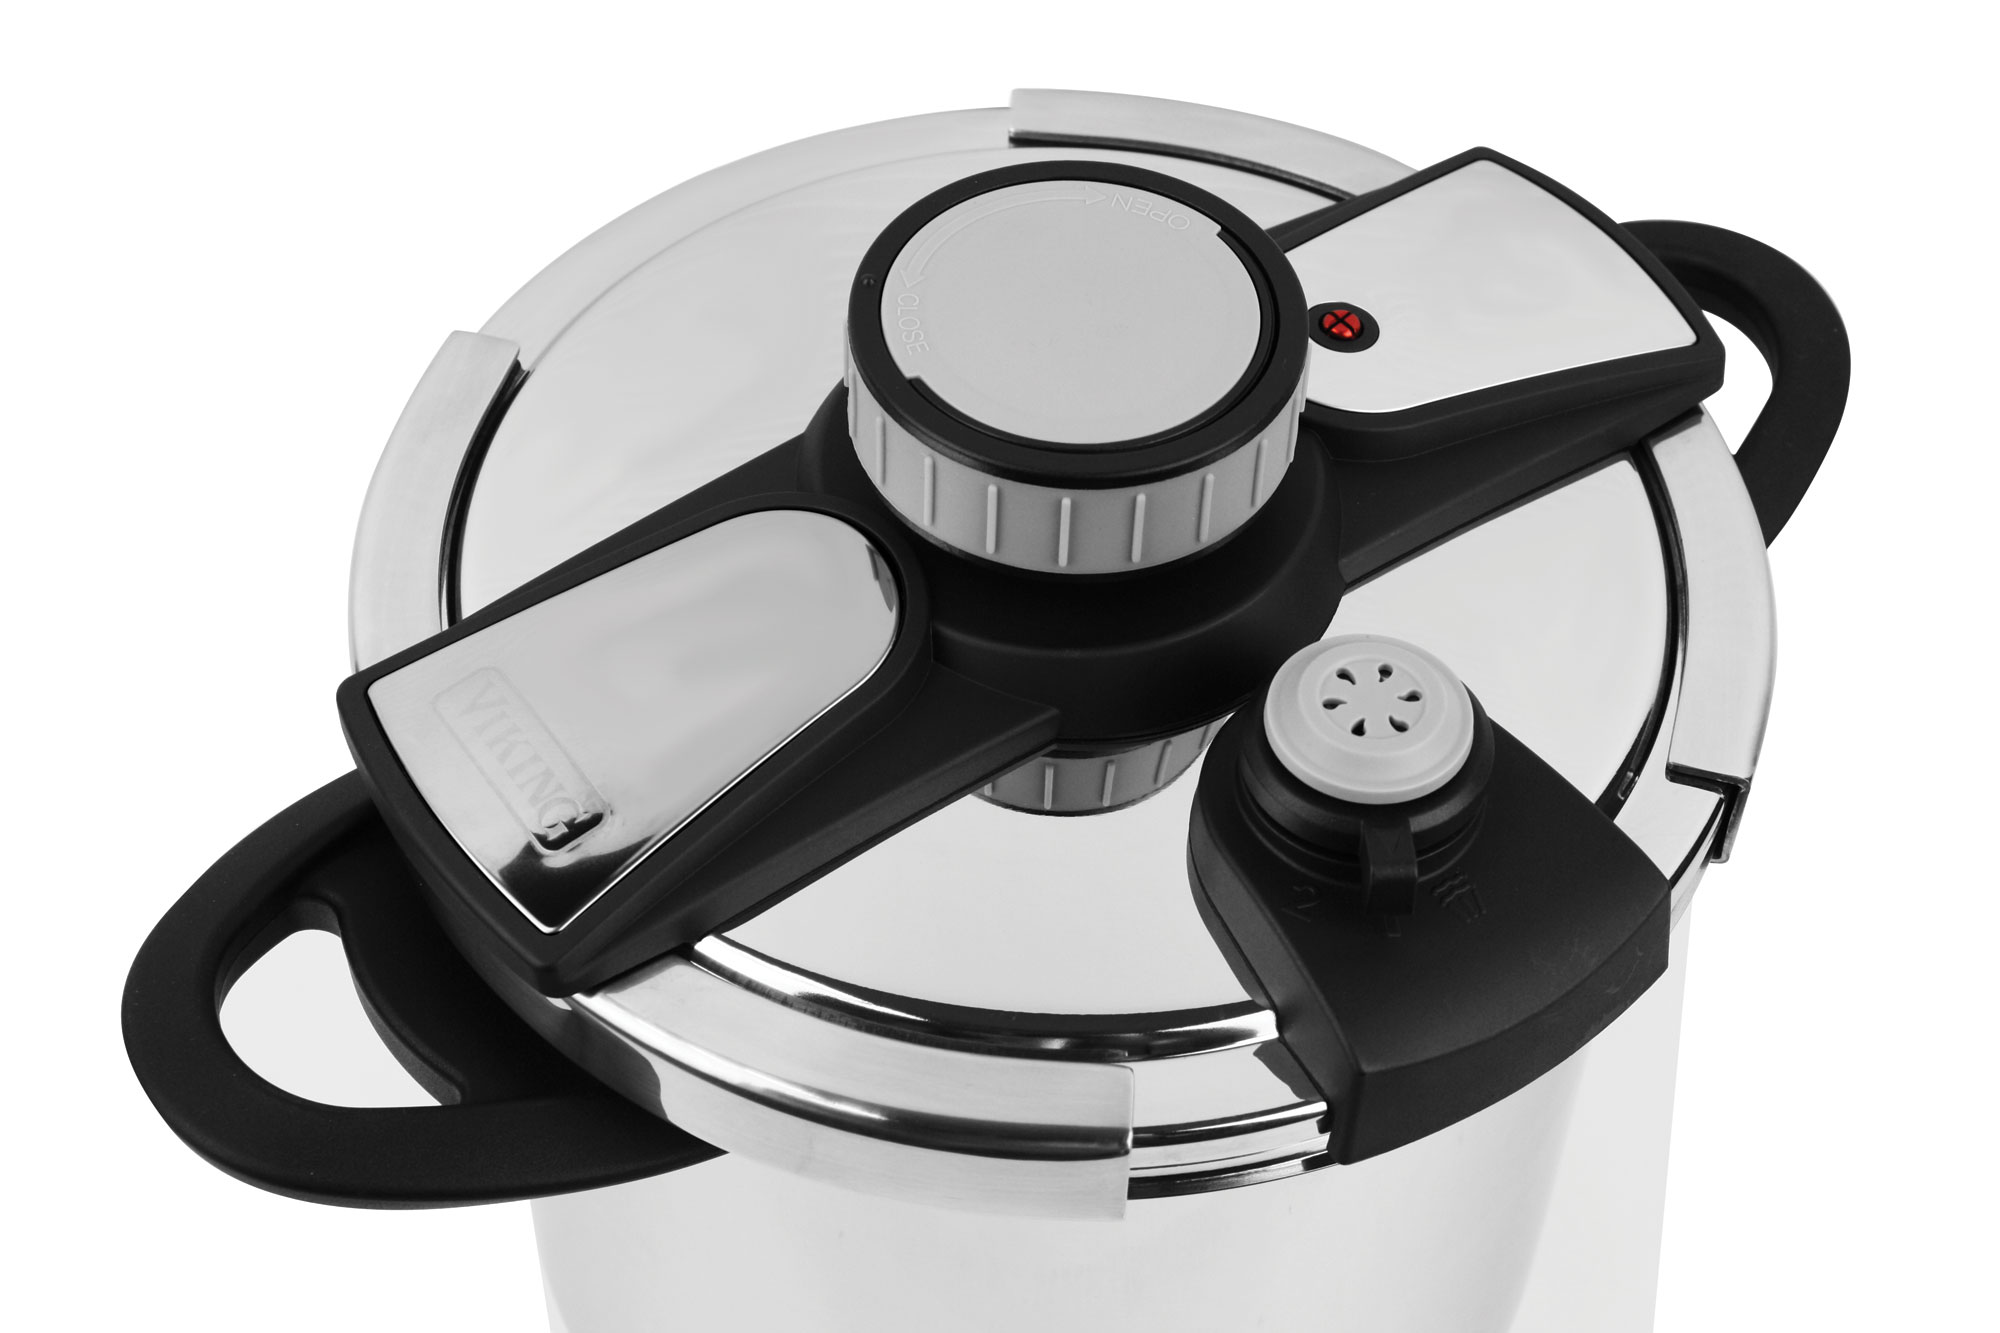 Viking Pressure Cooker With Easy Lock Clamp 8 Quart